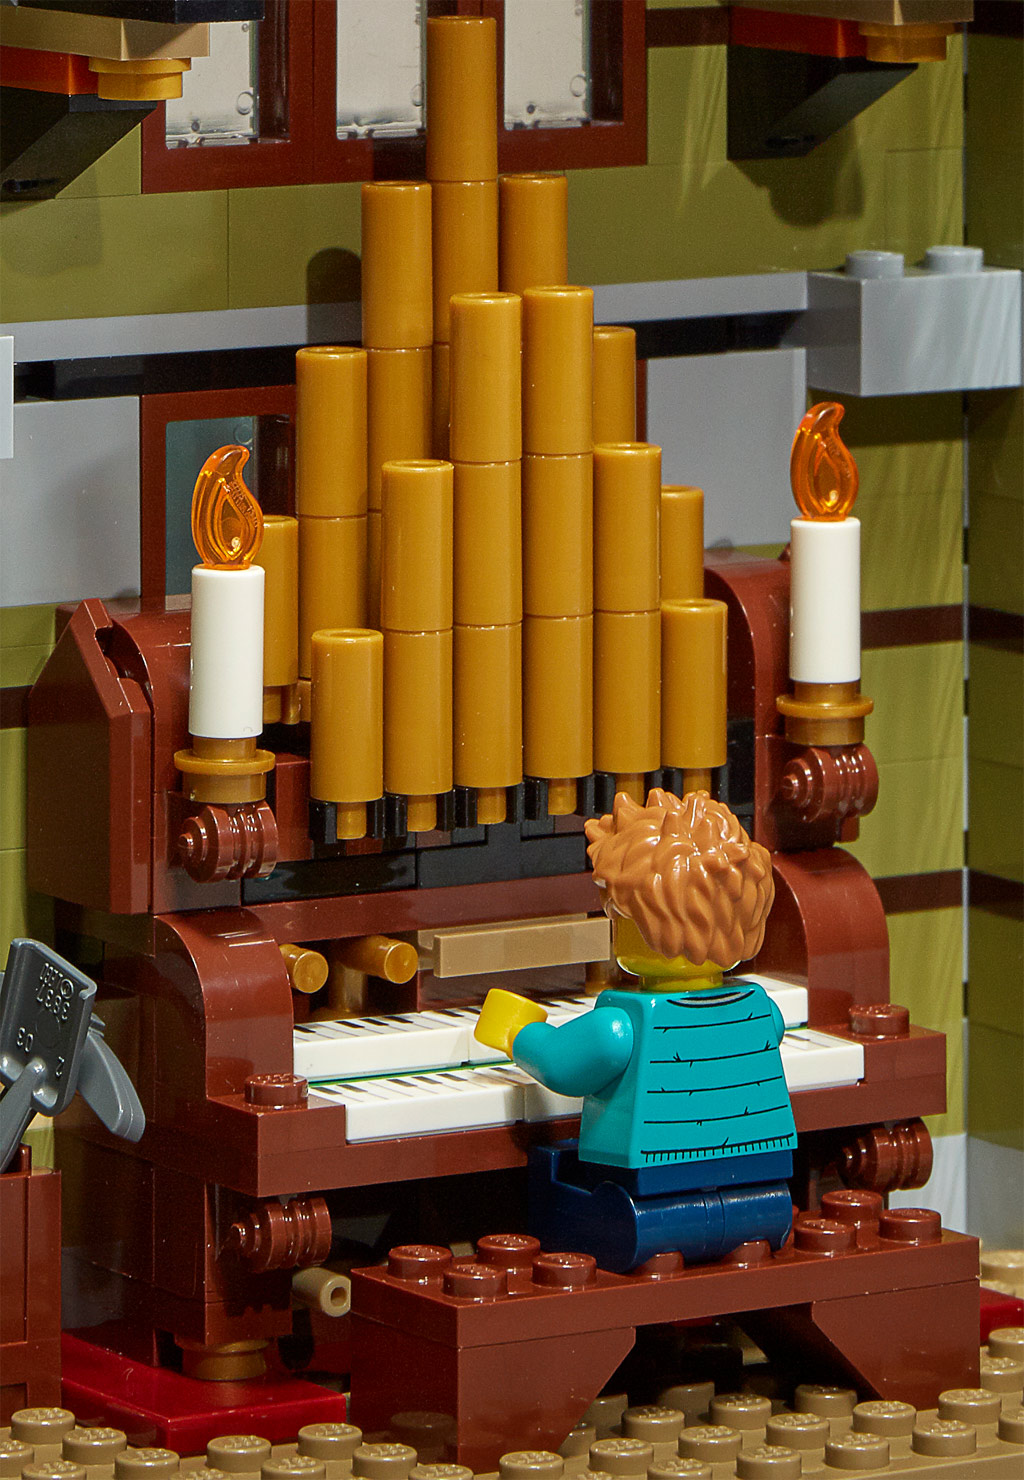 lego-fairground-collection-10273-haunted-house-spukhaus-2020-orgel zusammengebaut.com